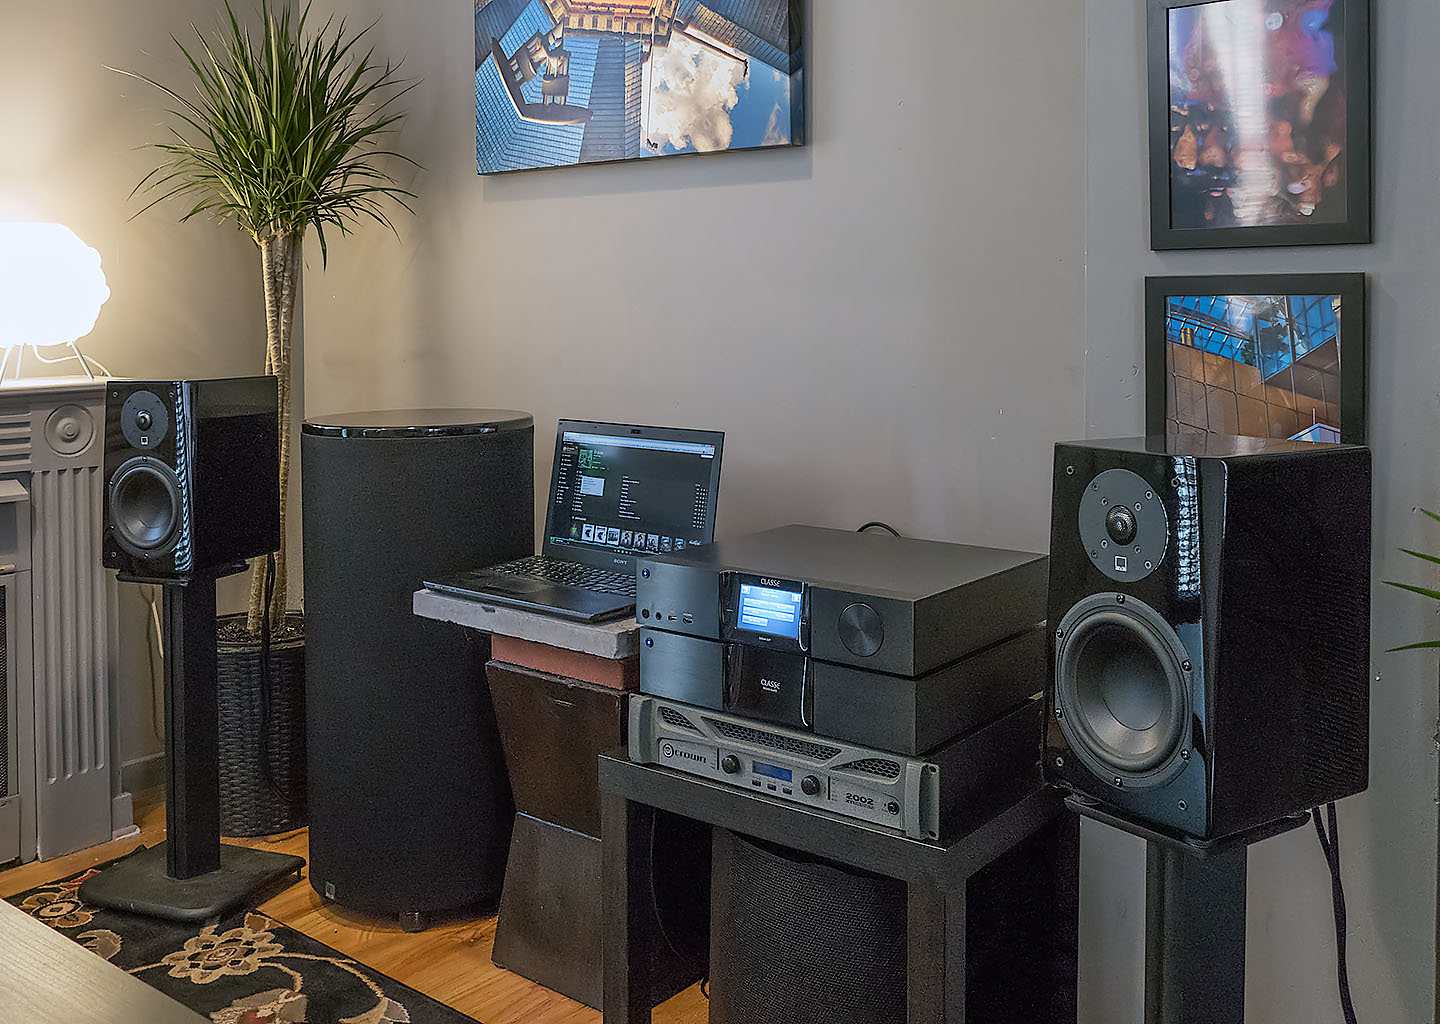 The Prime Bookshelf Speakers Are Back At It This Time As Part Of A Soon To Publish PC 2000 Review Itll Be First Take Place In My New